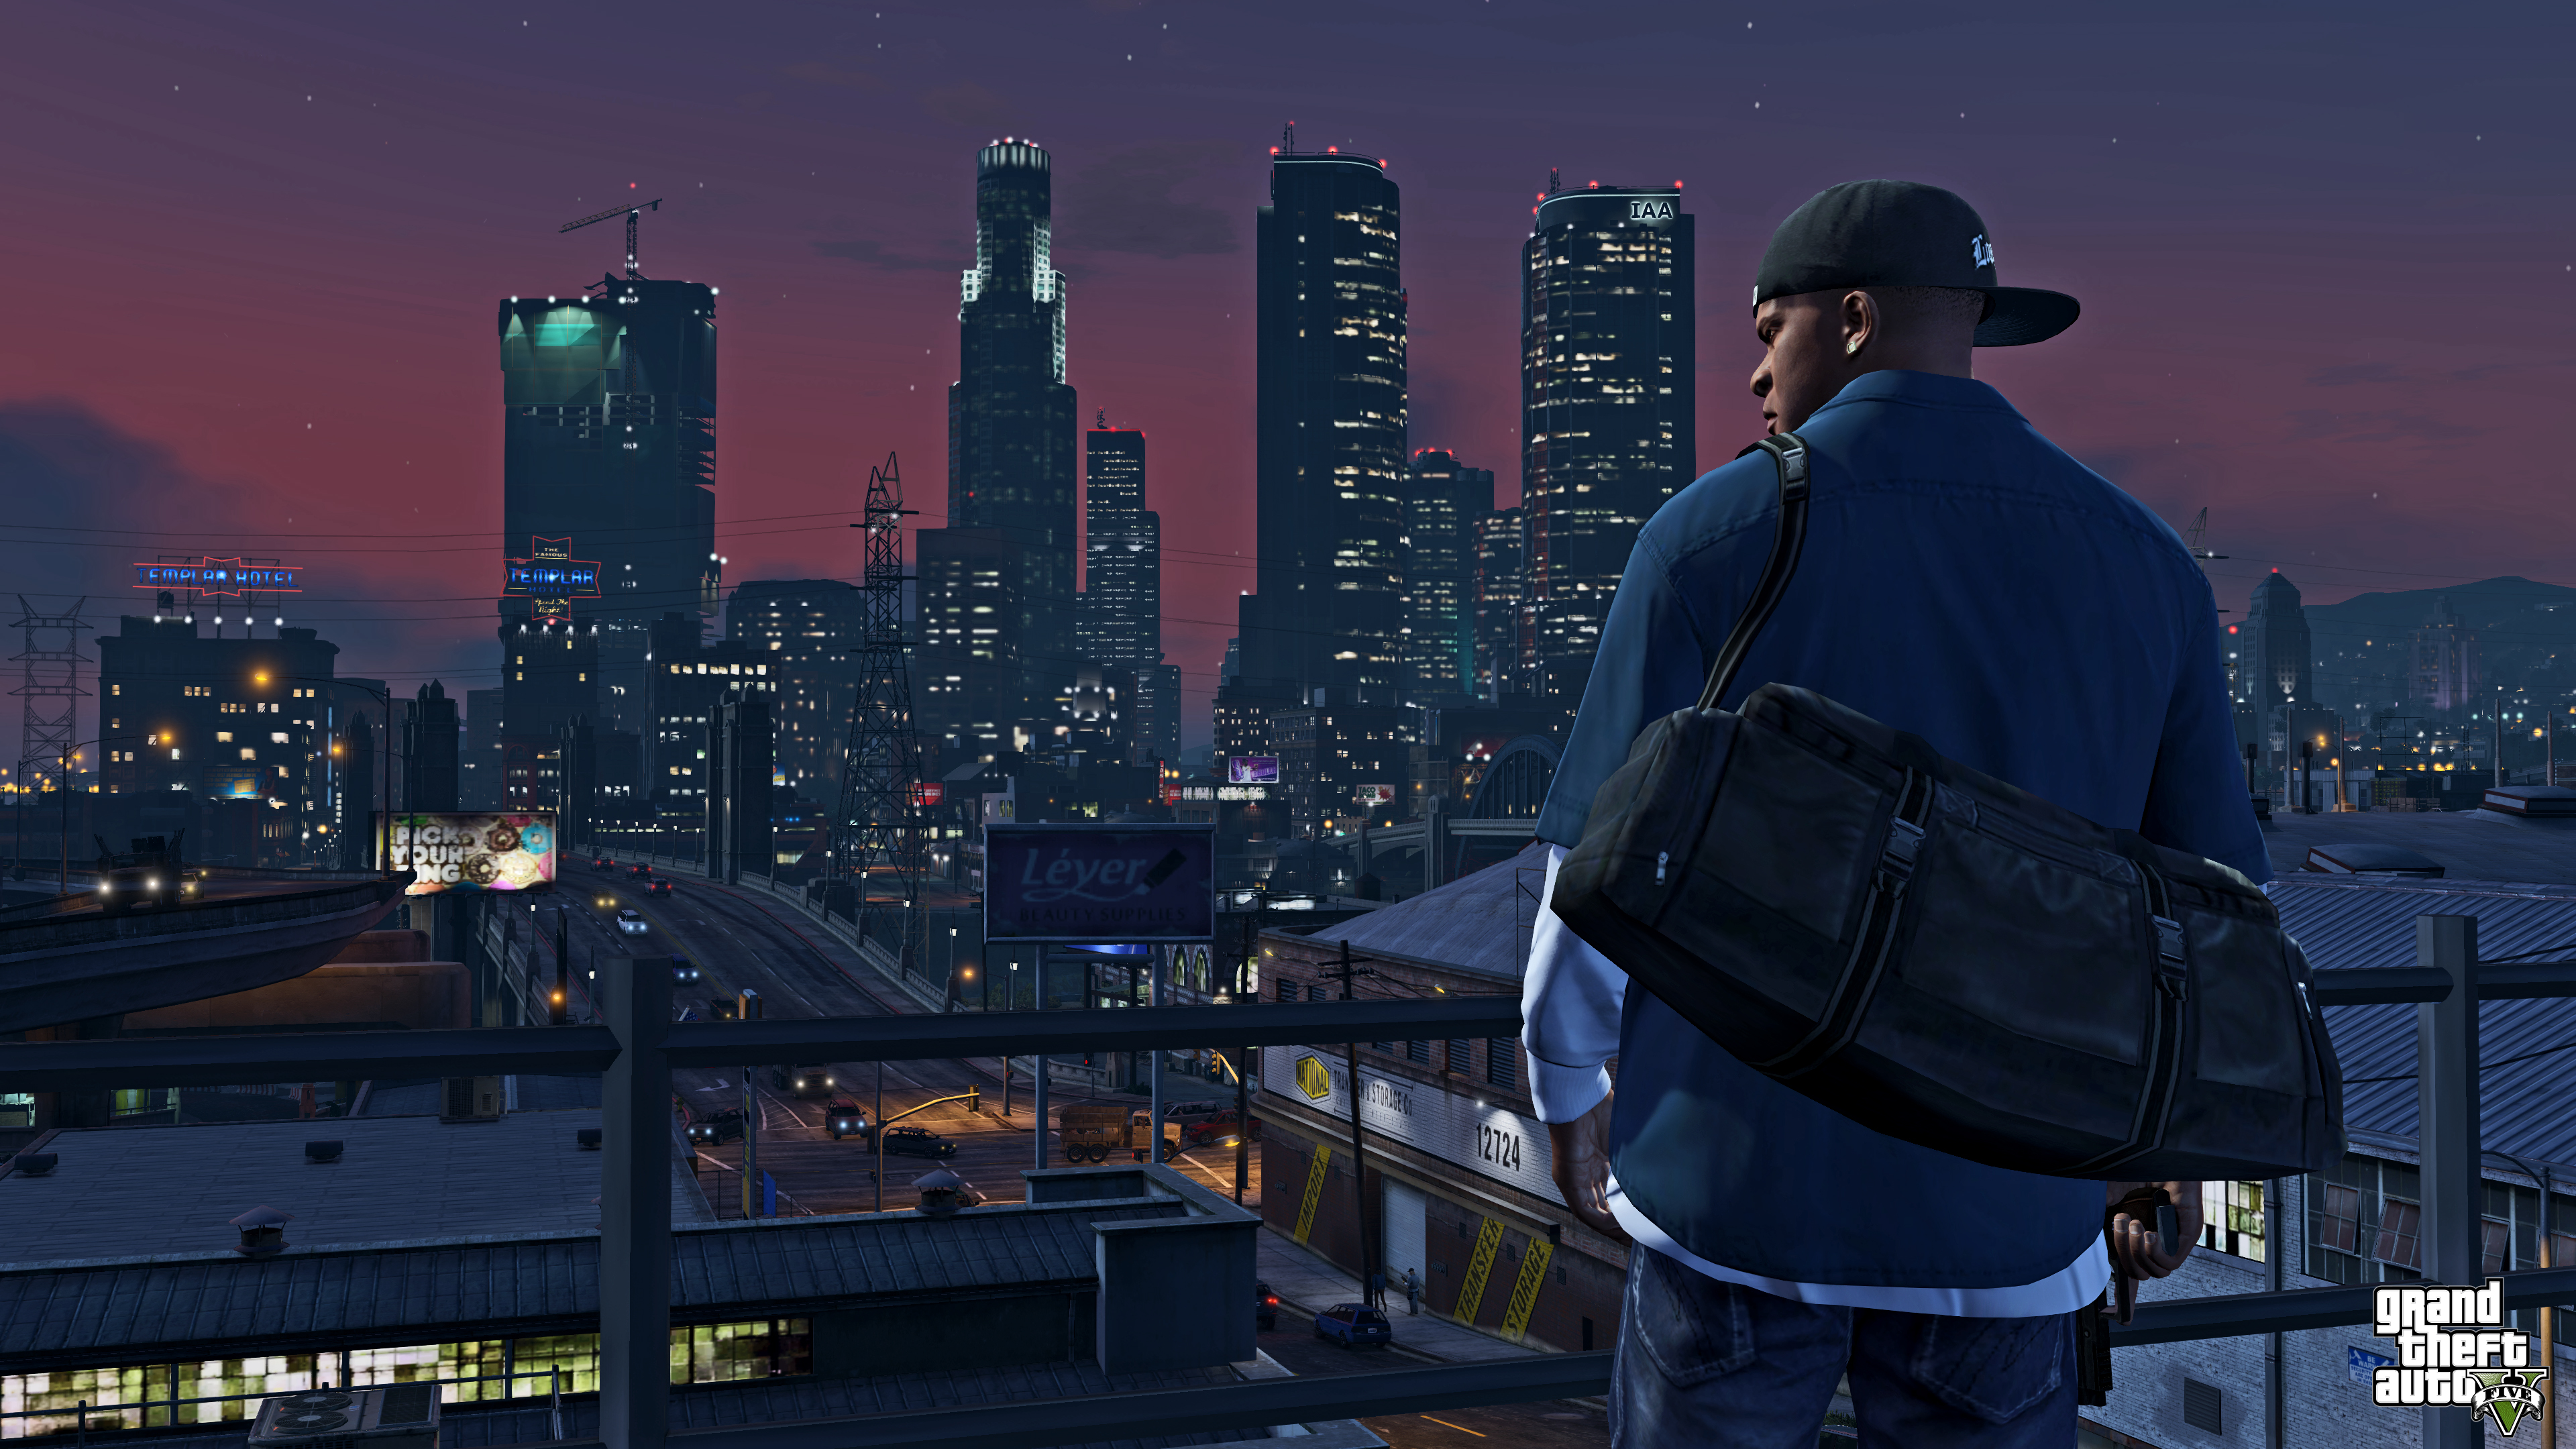 GTA Release Date Rumours Gameplay Trailer And News When Will - Gta 6 london map